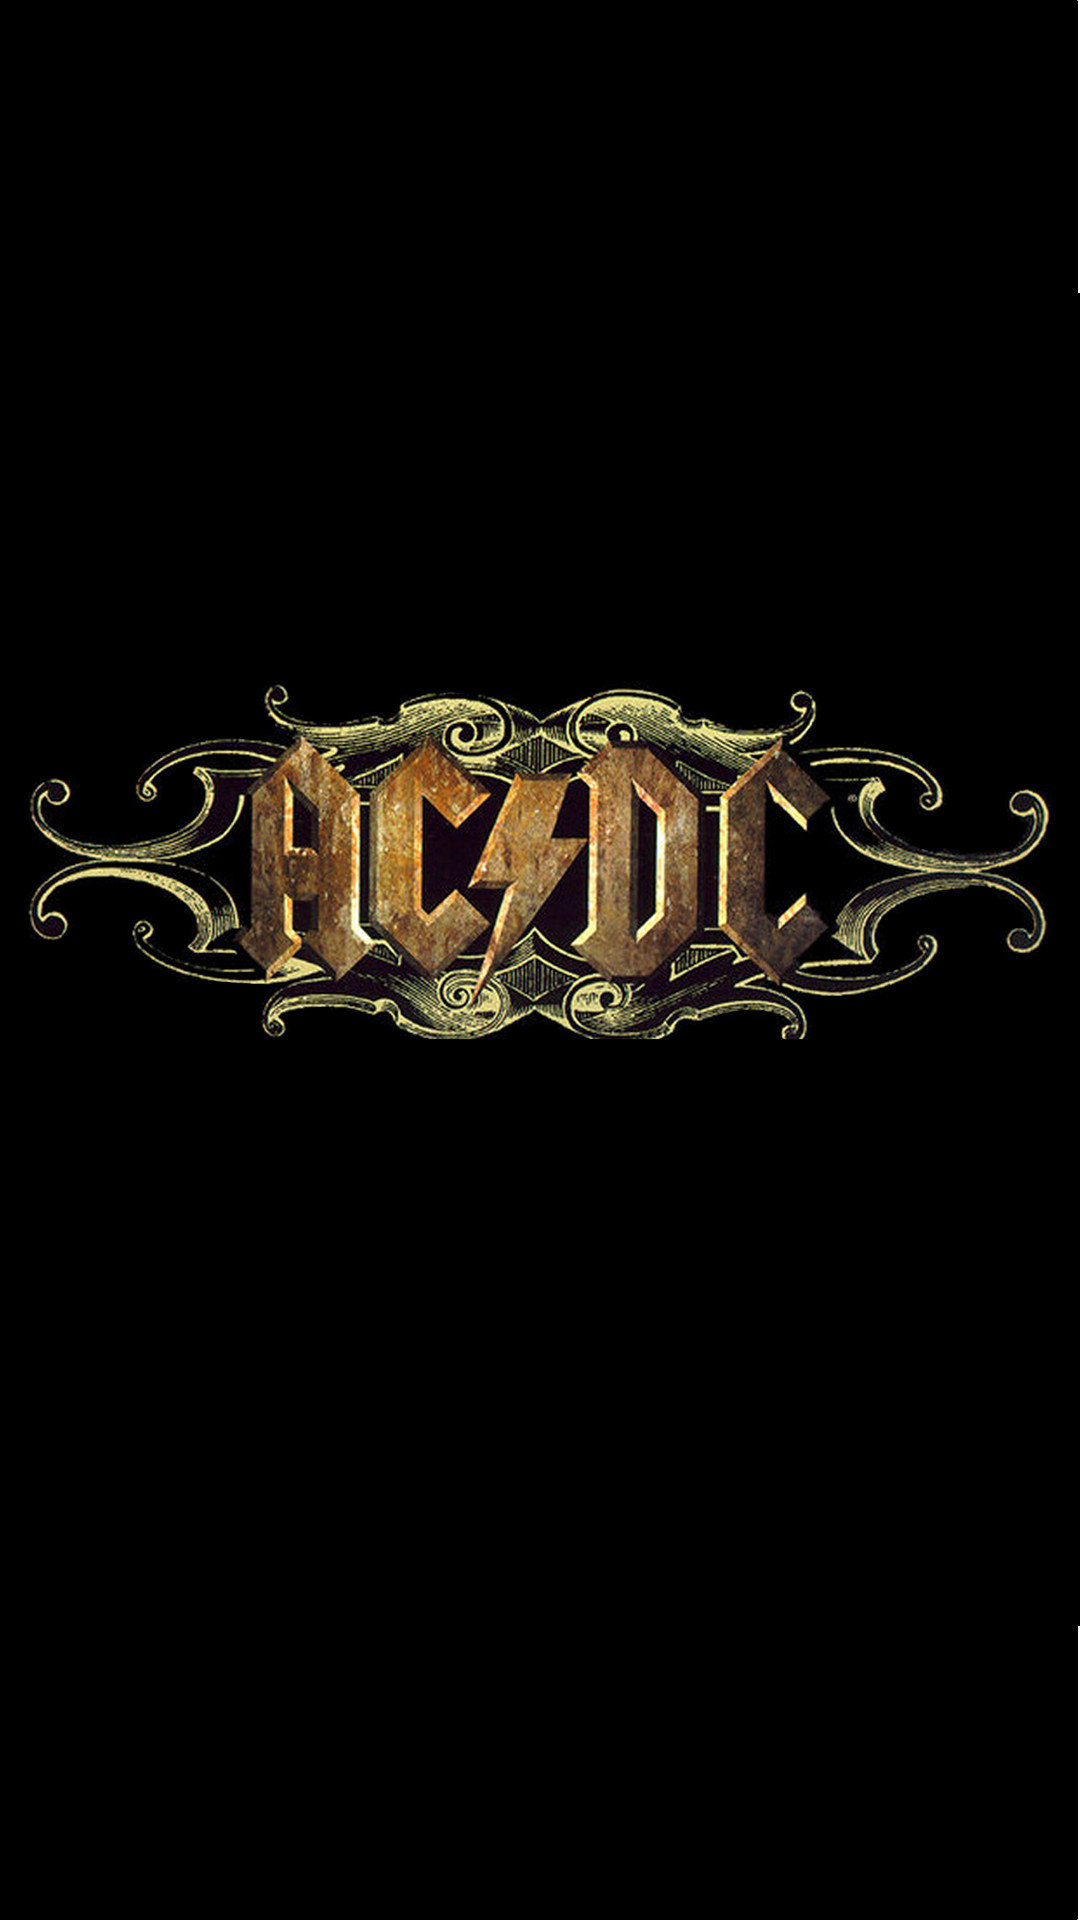 ACDC Rock Band Logo iPhone 6 Plus HD Wallpaper …